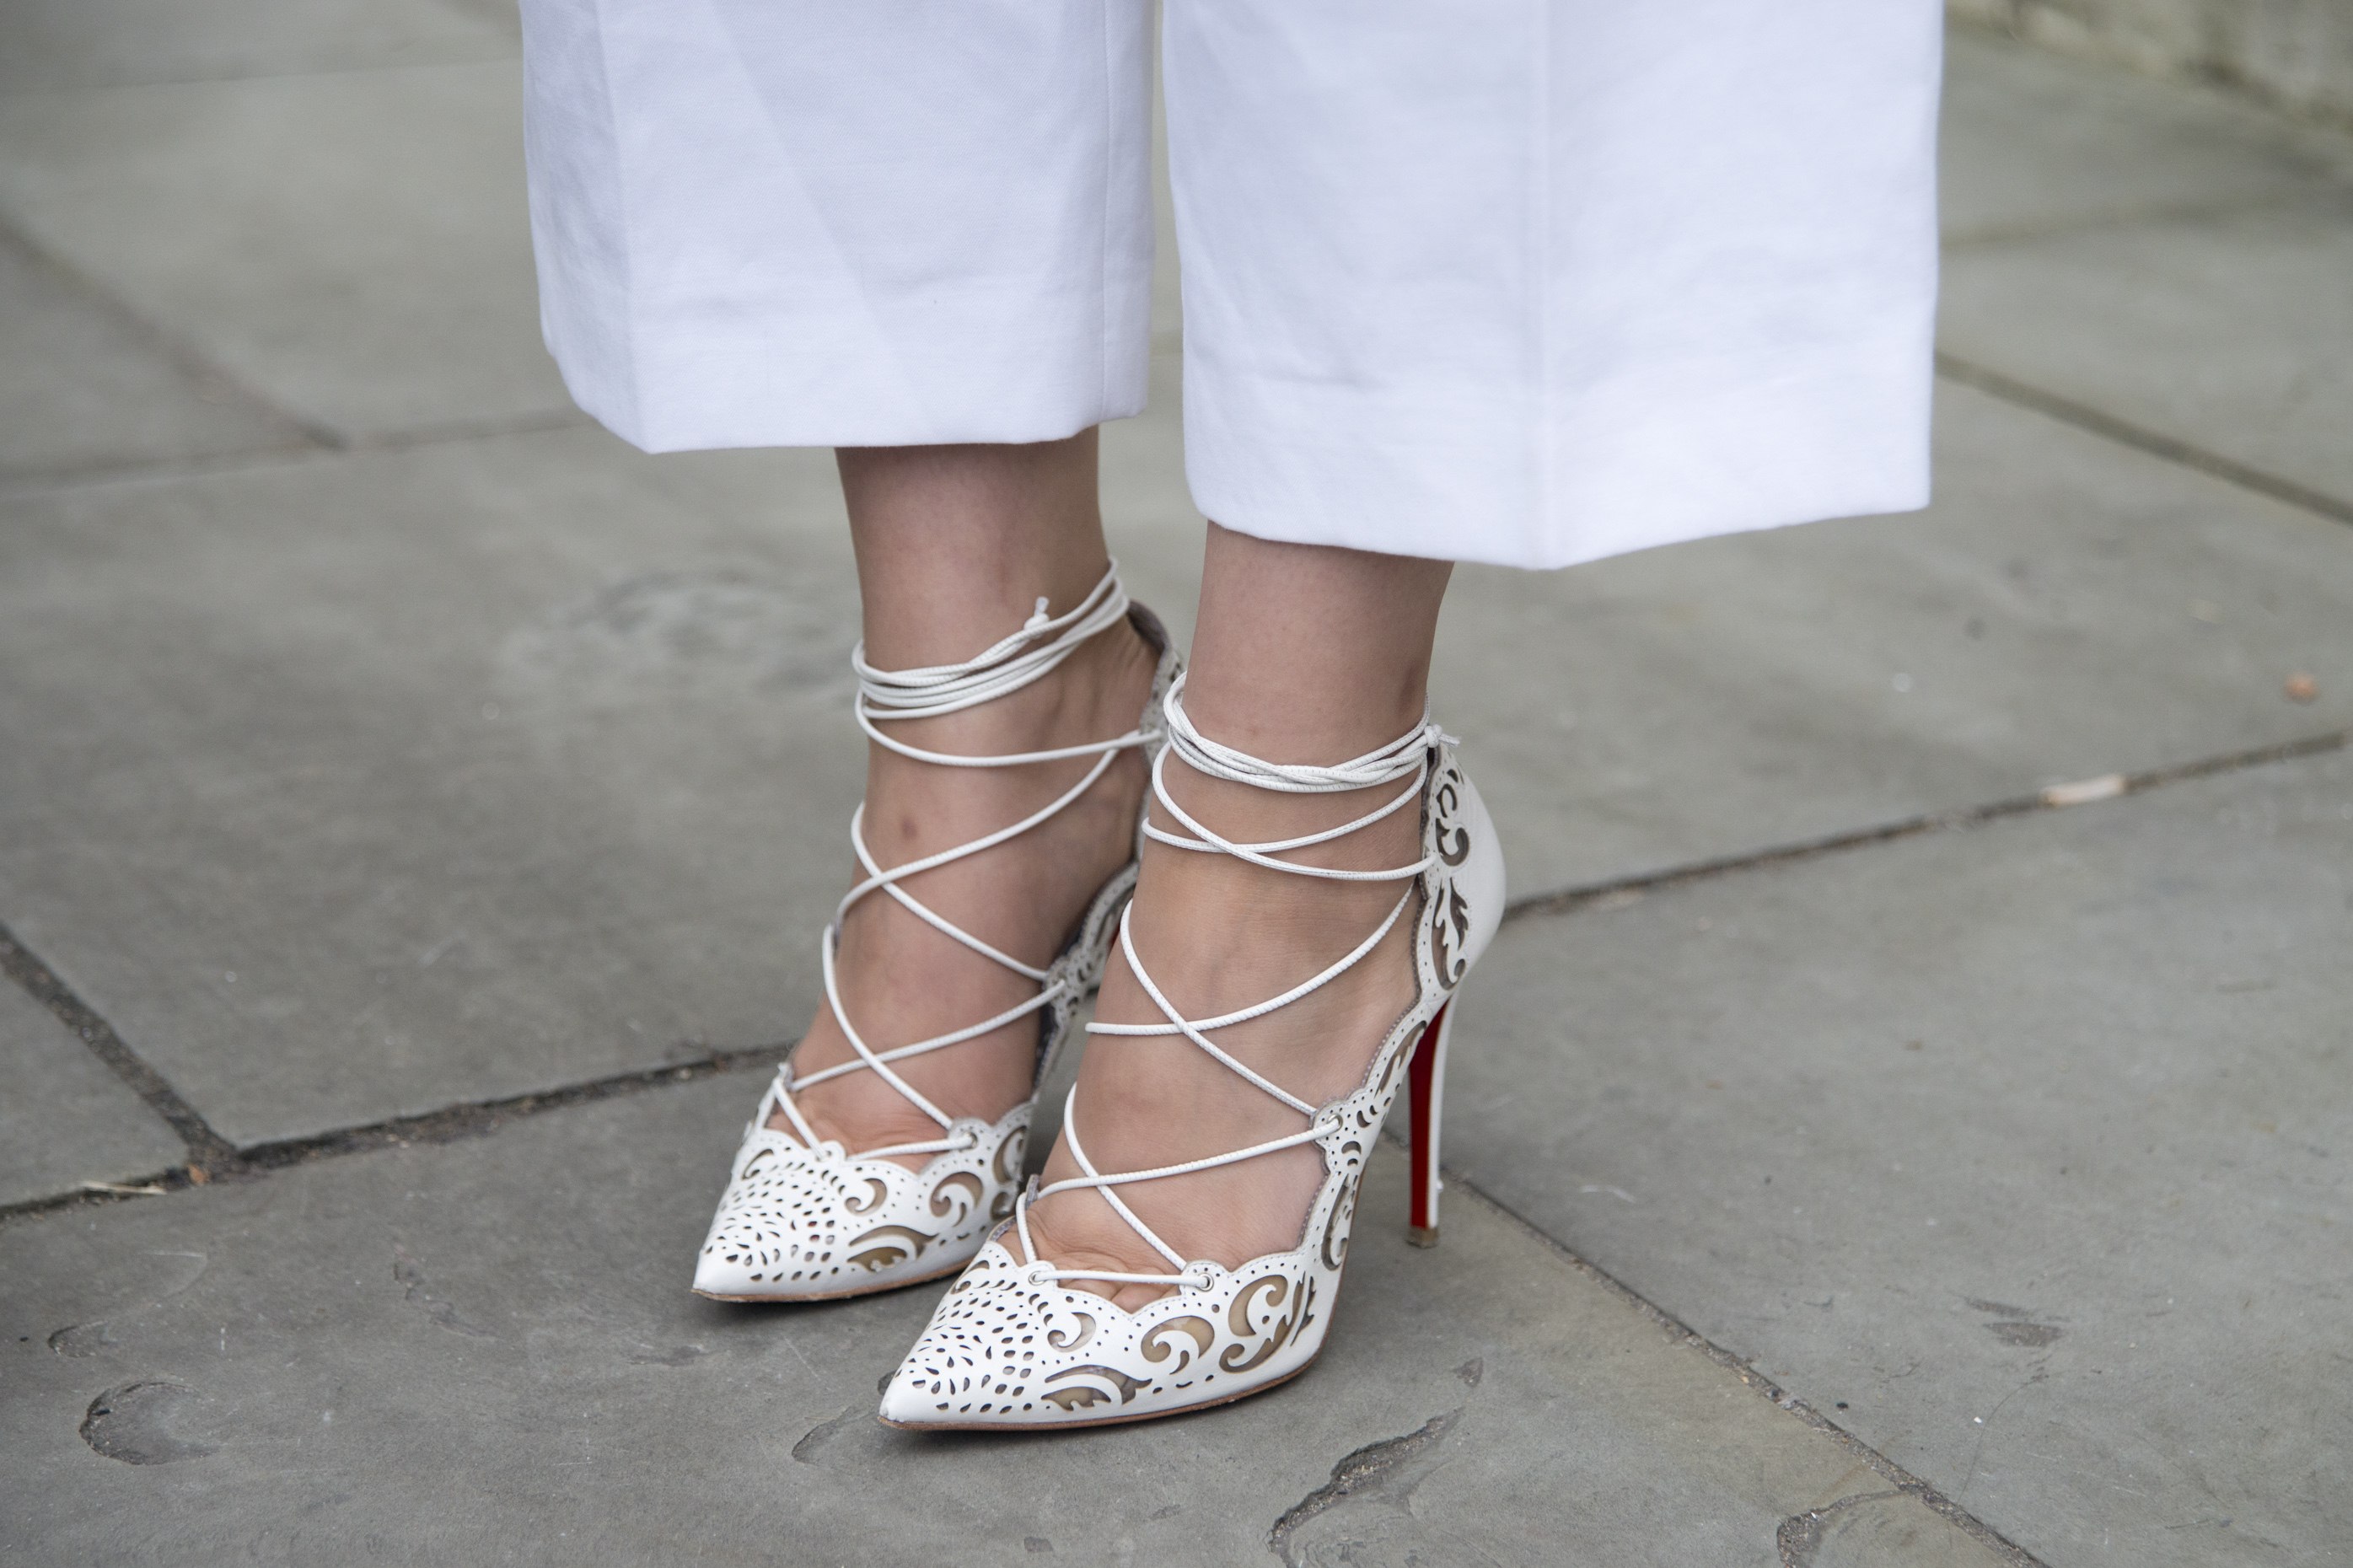 d8ce51a36381 The Christian Louboutin Sample Sale Returns This Week for Only the Most VIP  (Updated)